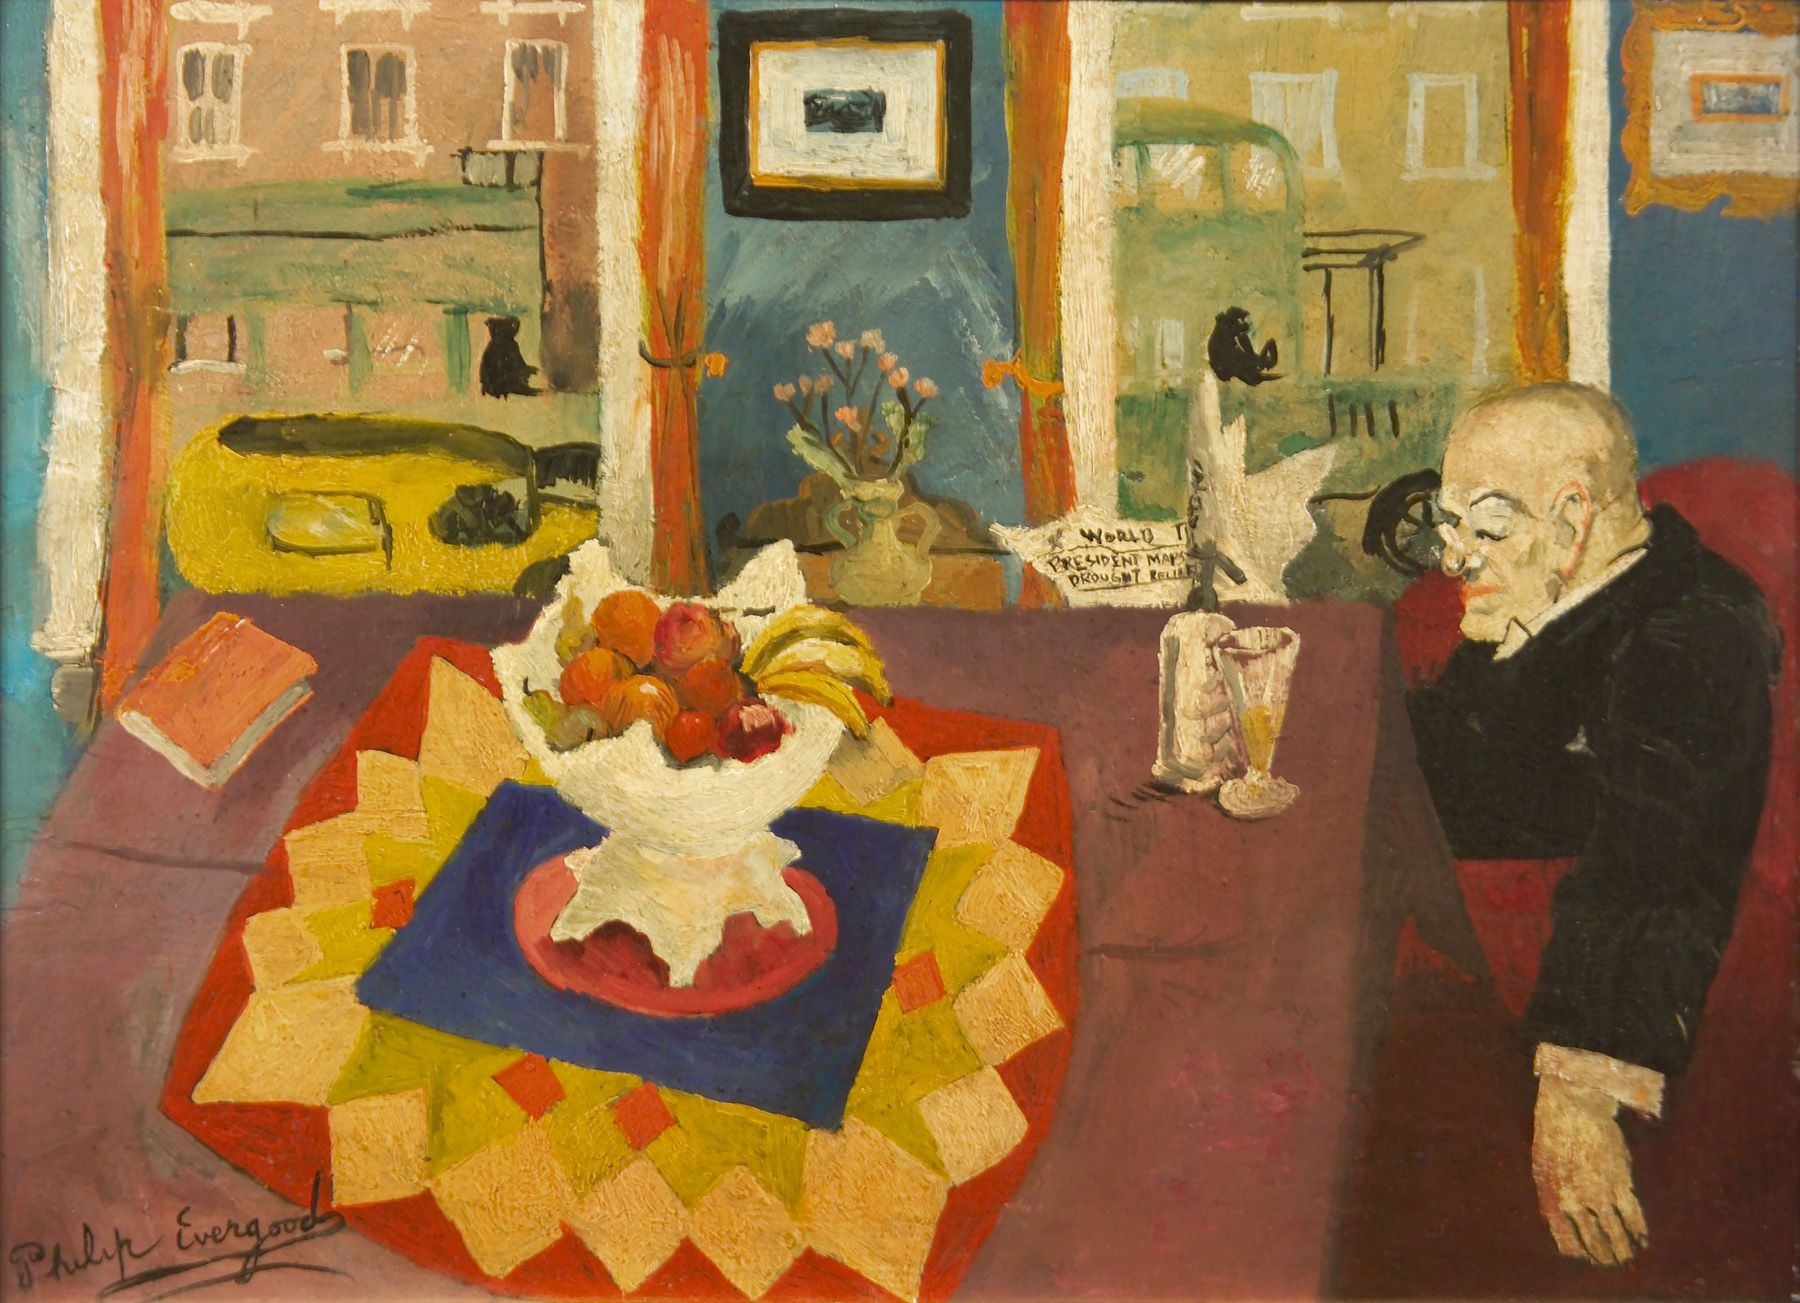 philip evergood, Untitled (Interior with Man at Table) [SOLD], c. 1932, oil on panel, 11 1/2 x 15 3/4 inches